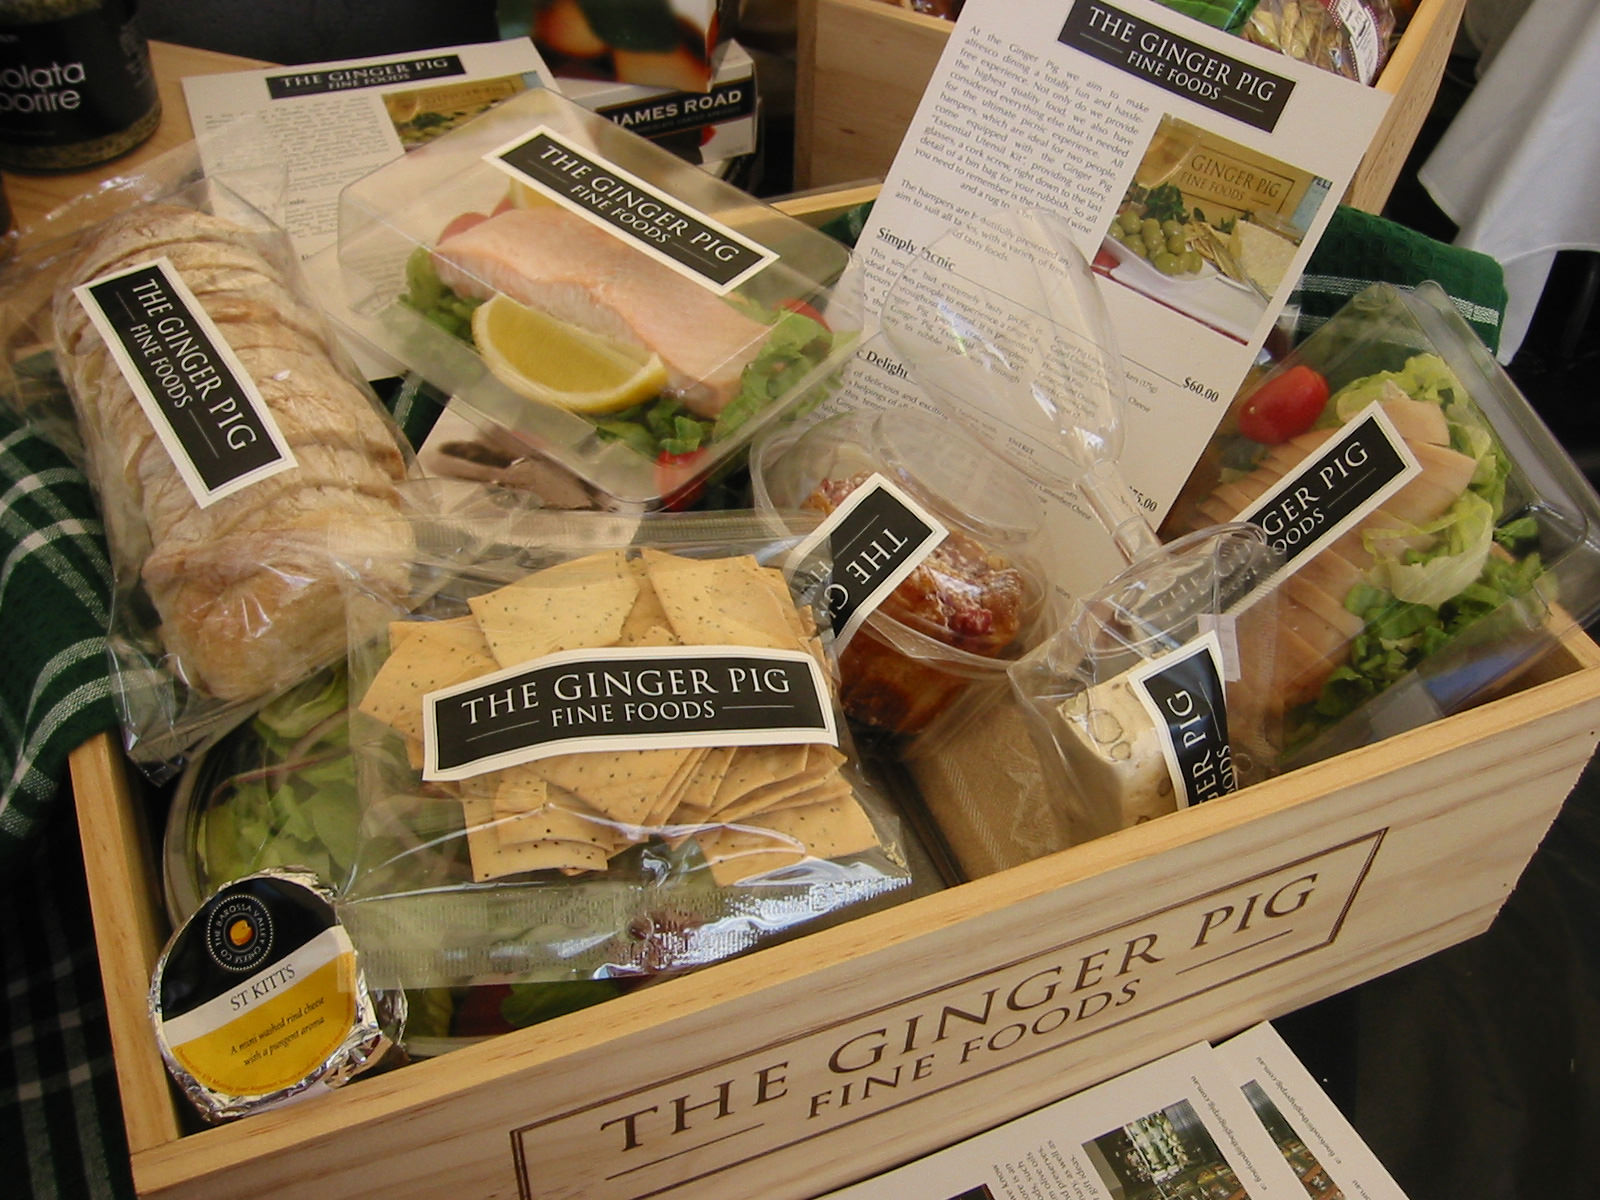 The Ginger Pig gourmet goodies